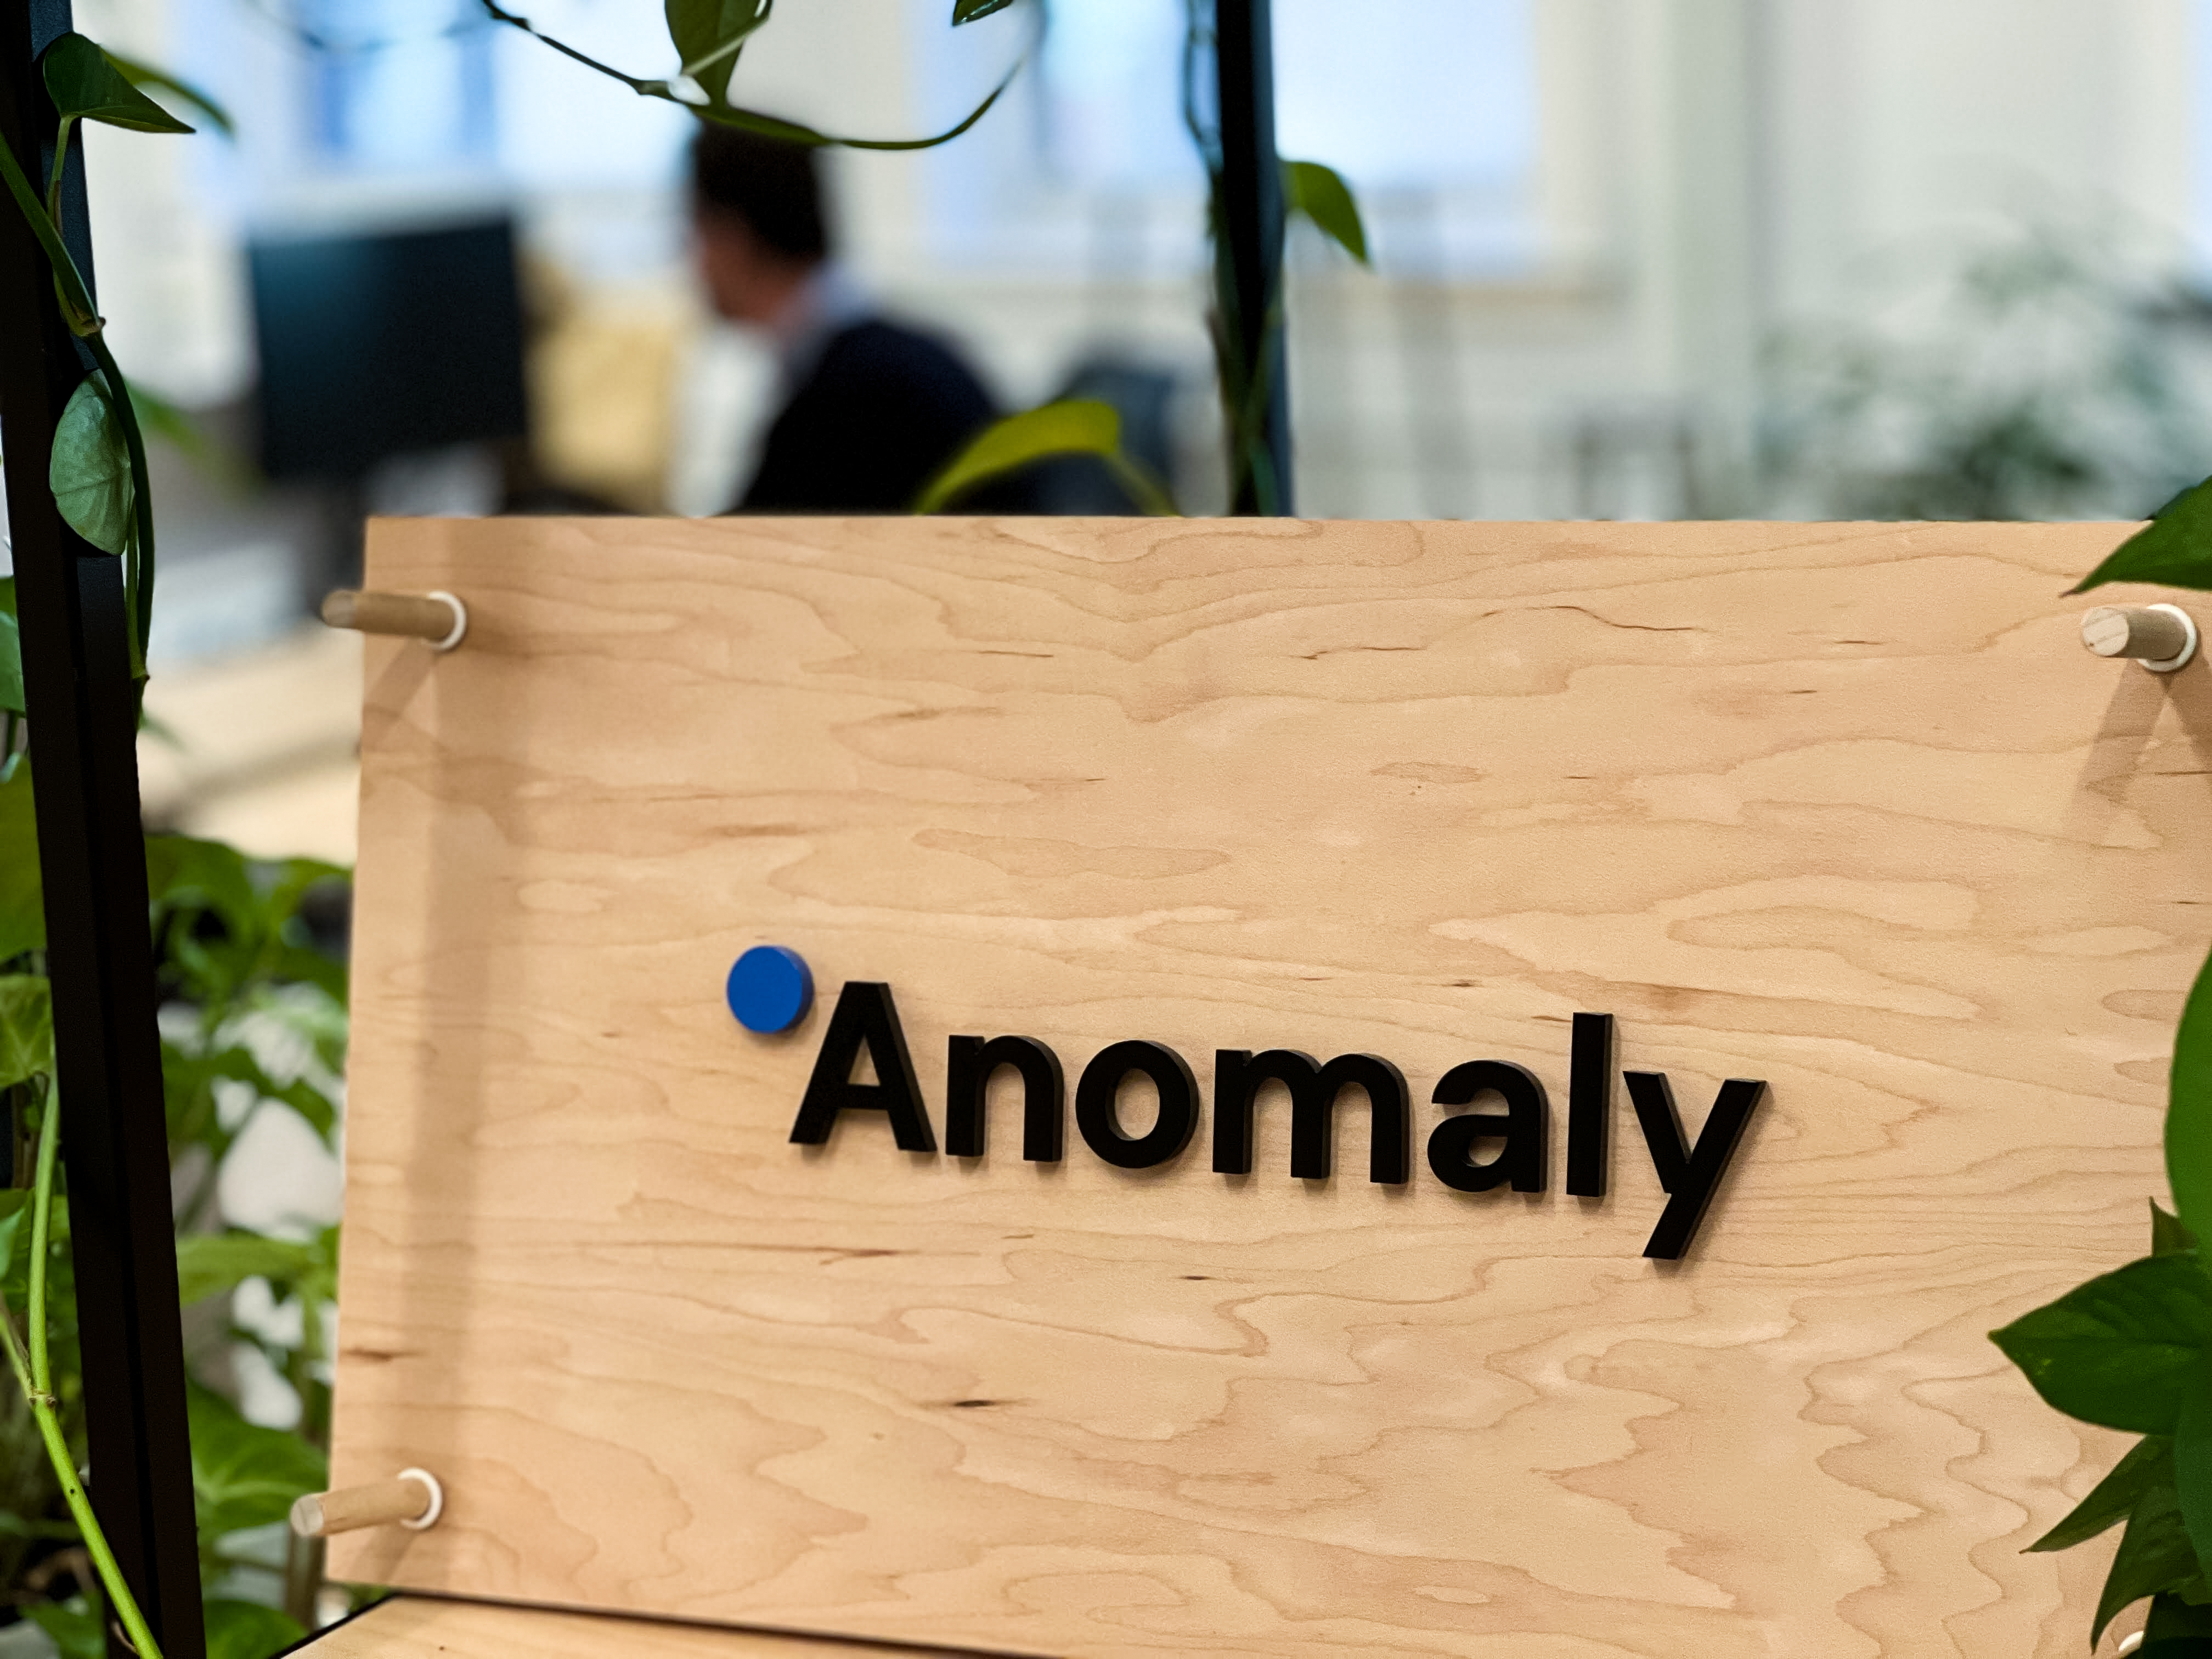 techcrunch.com - Emma Betuel - Anomaly announces $17M in funding to tackle a $300B healthcare problem